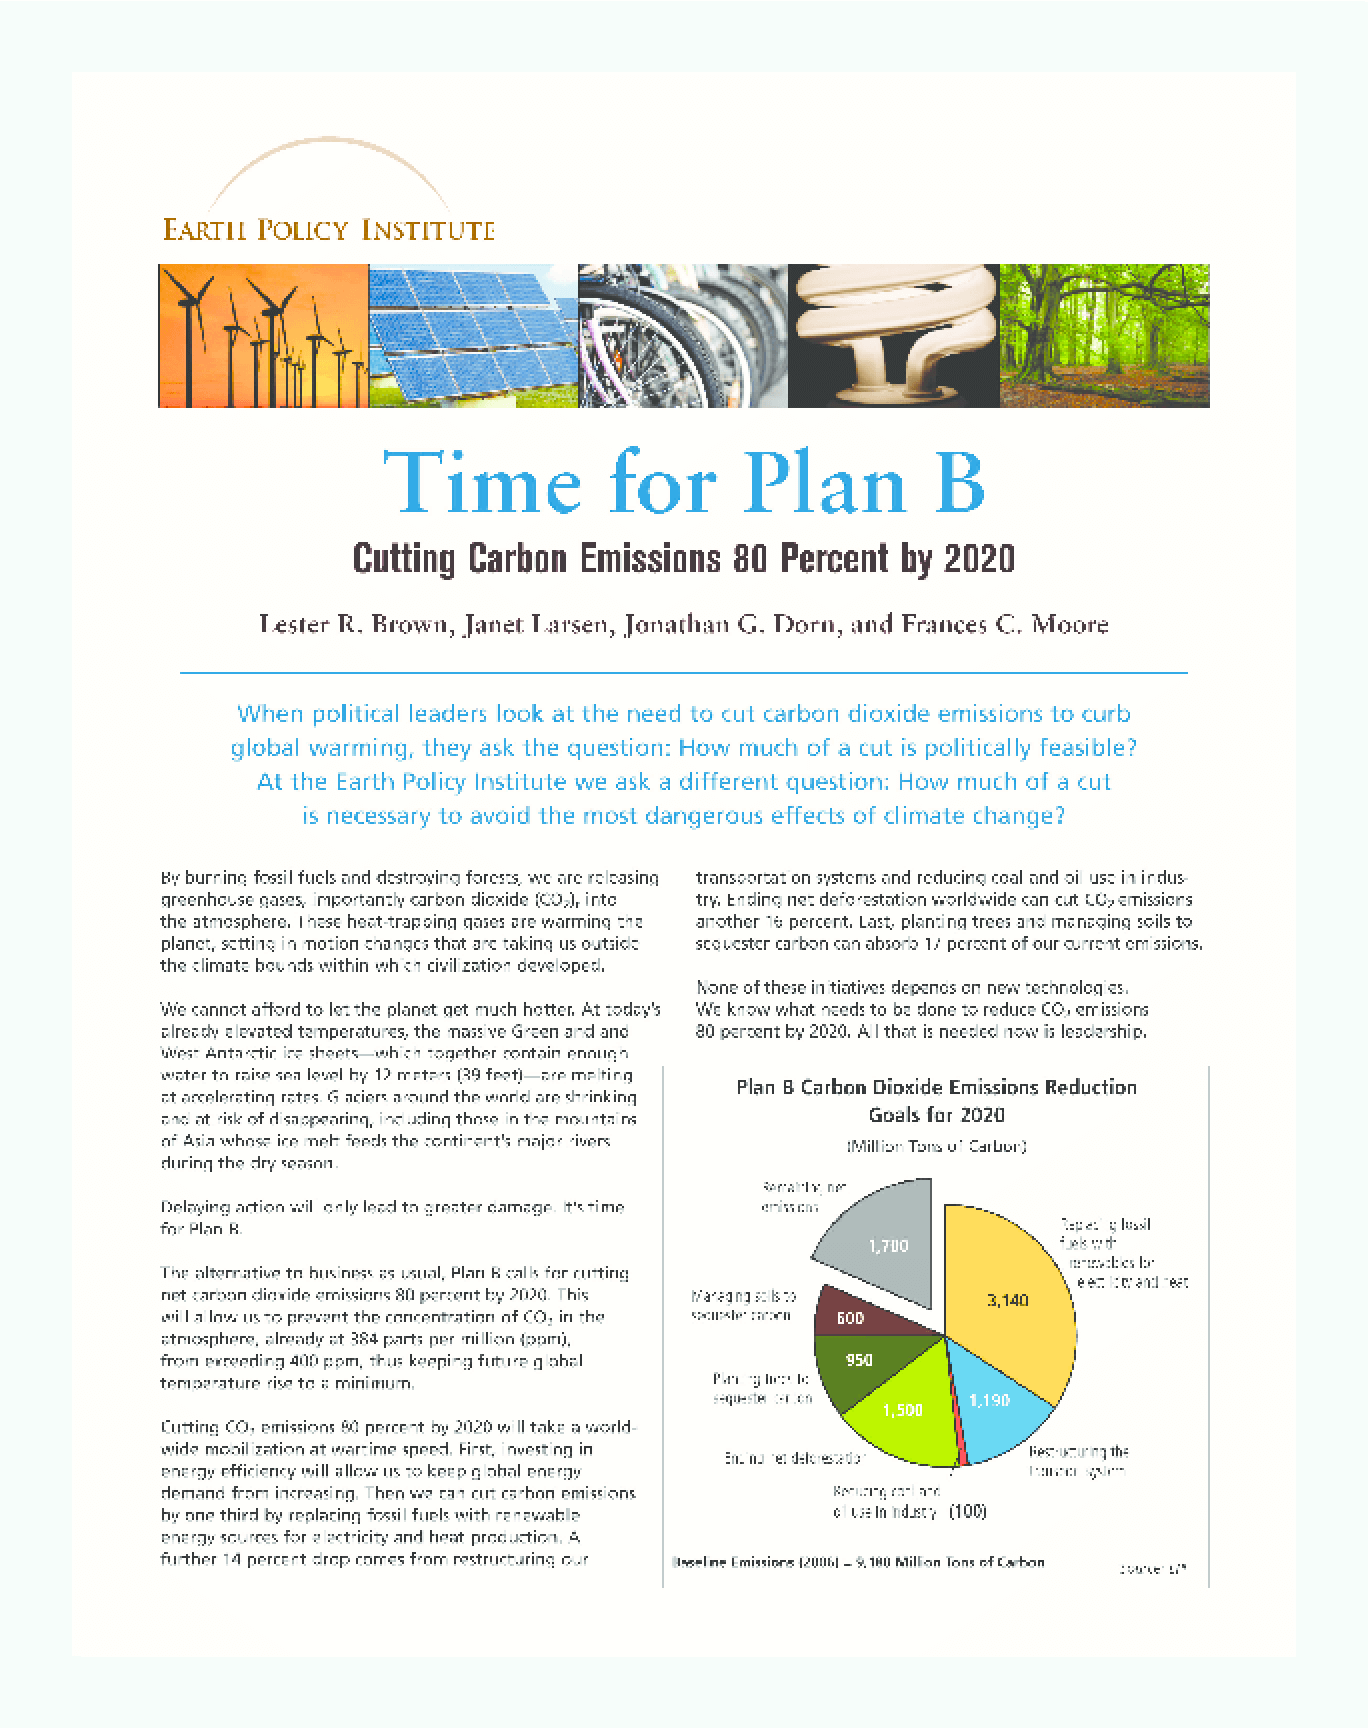 Time for Plan B: Cutting Carbon Emissions 80 Percent by 2020